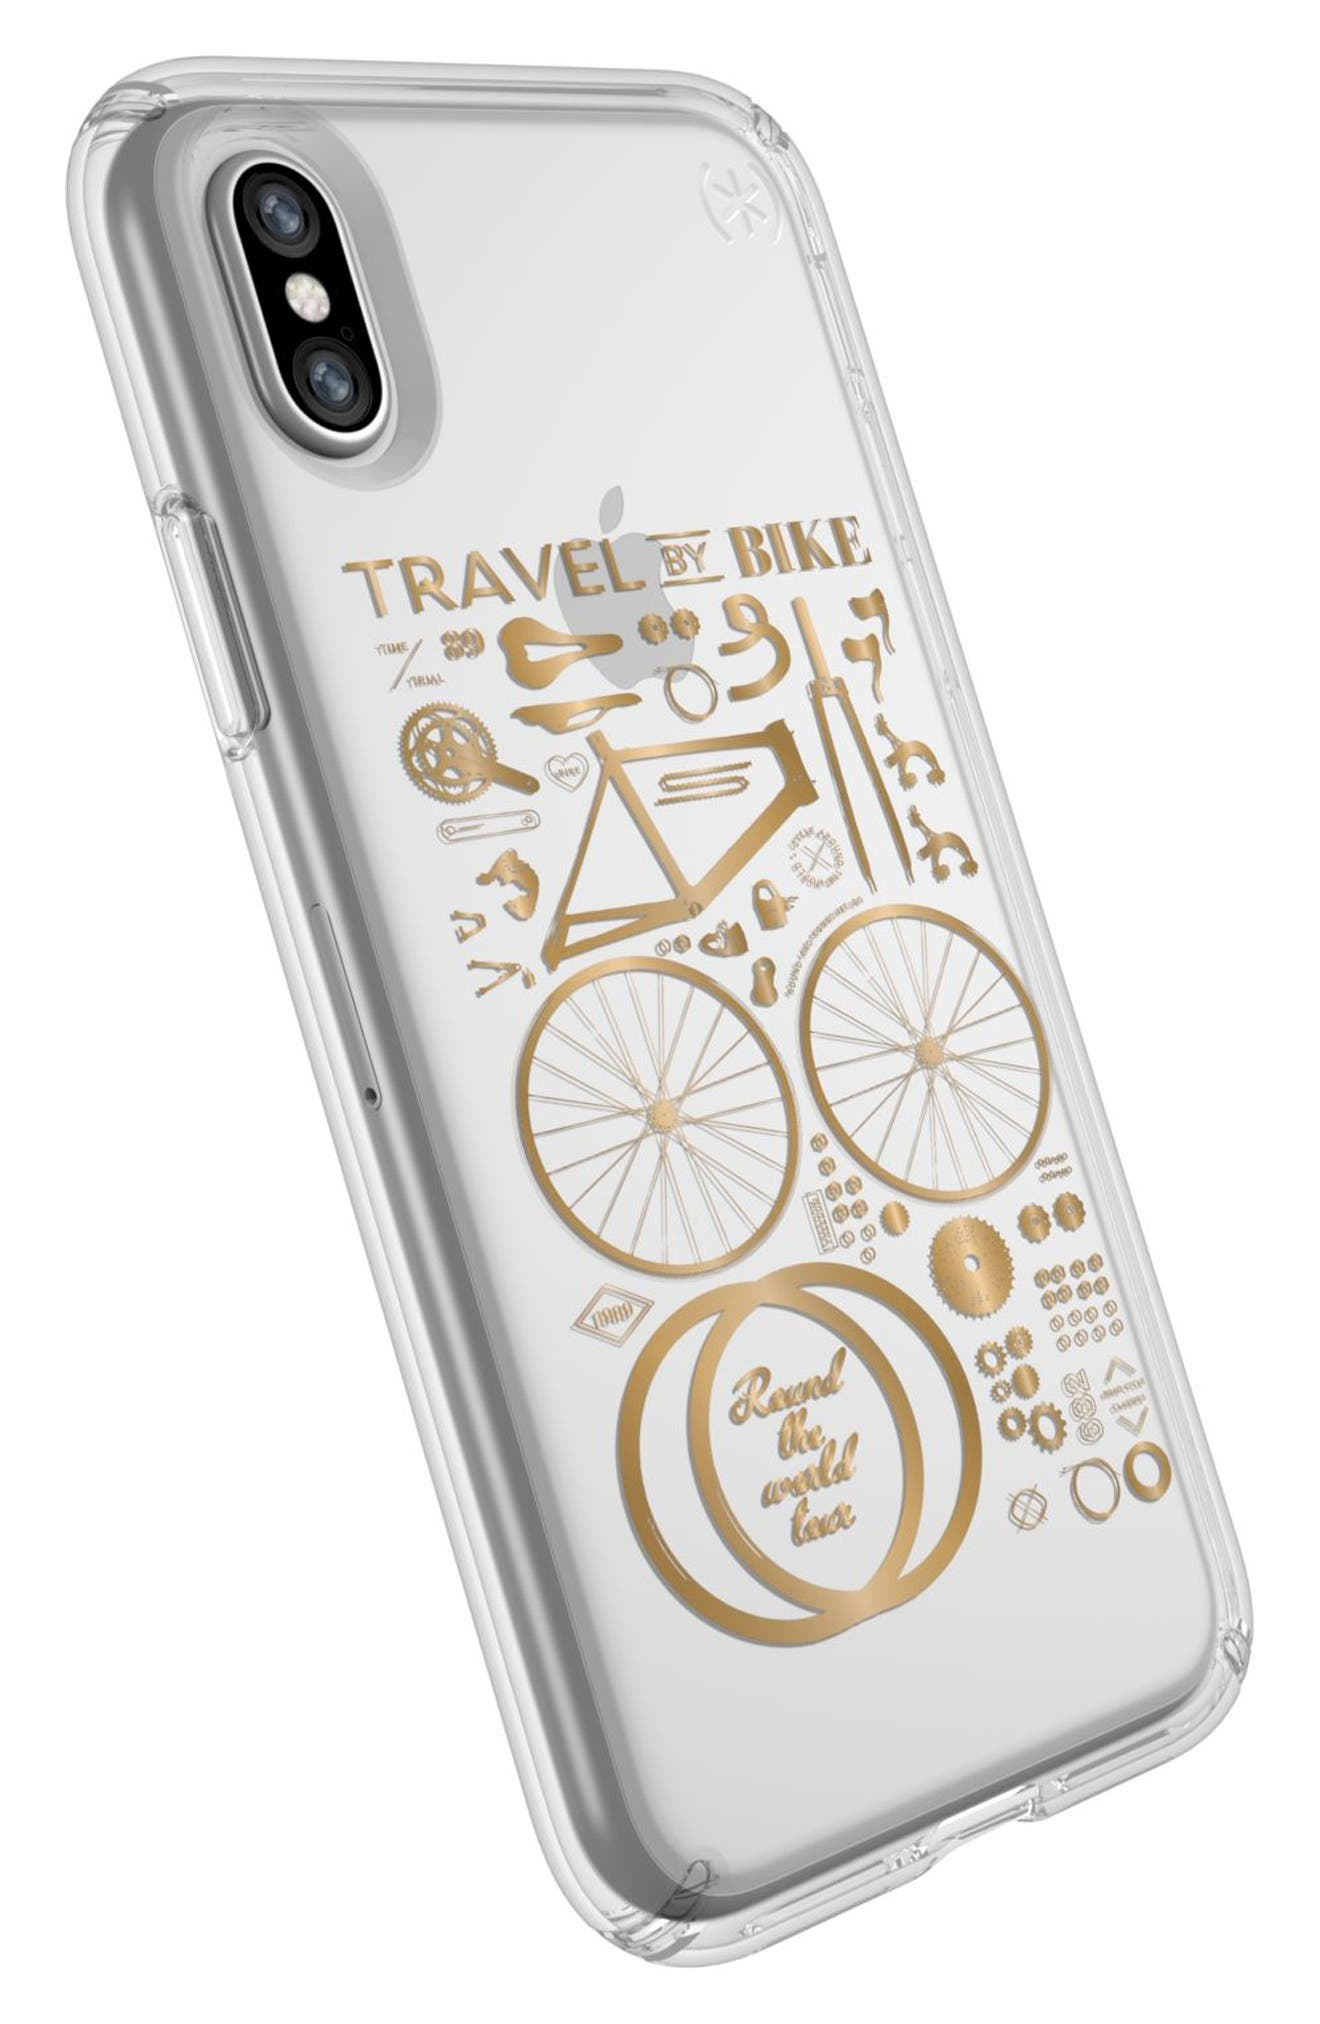 Metallic City Bike Transparent iPhone X Case,                             Alternate thumbnail 4, color,                             City Bike Metallic Gold/ Clear